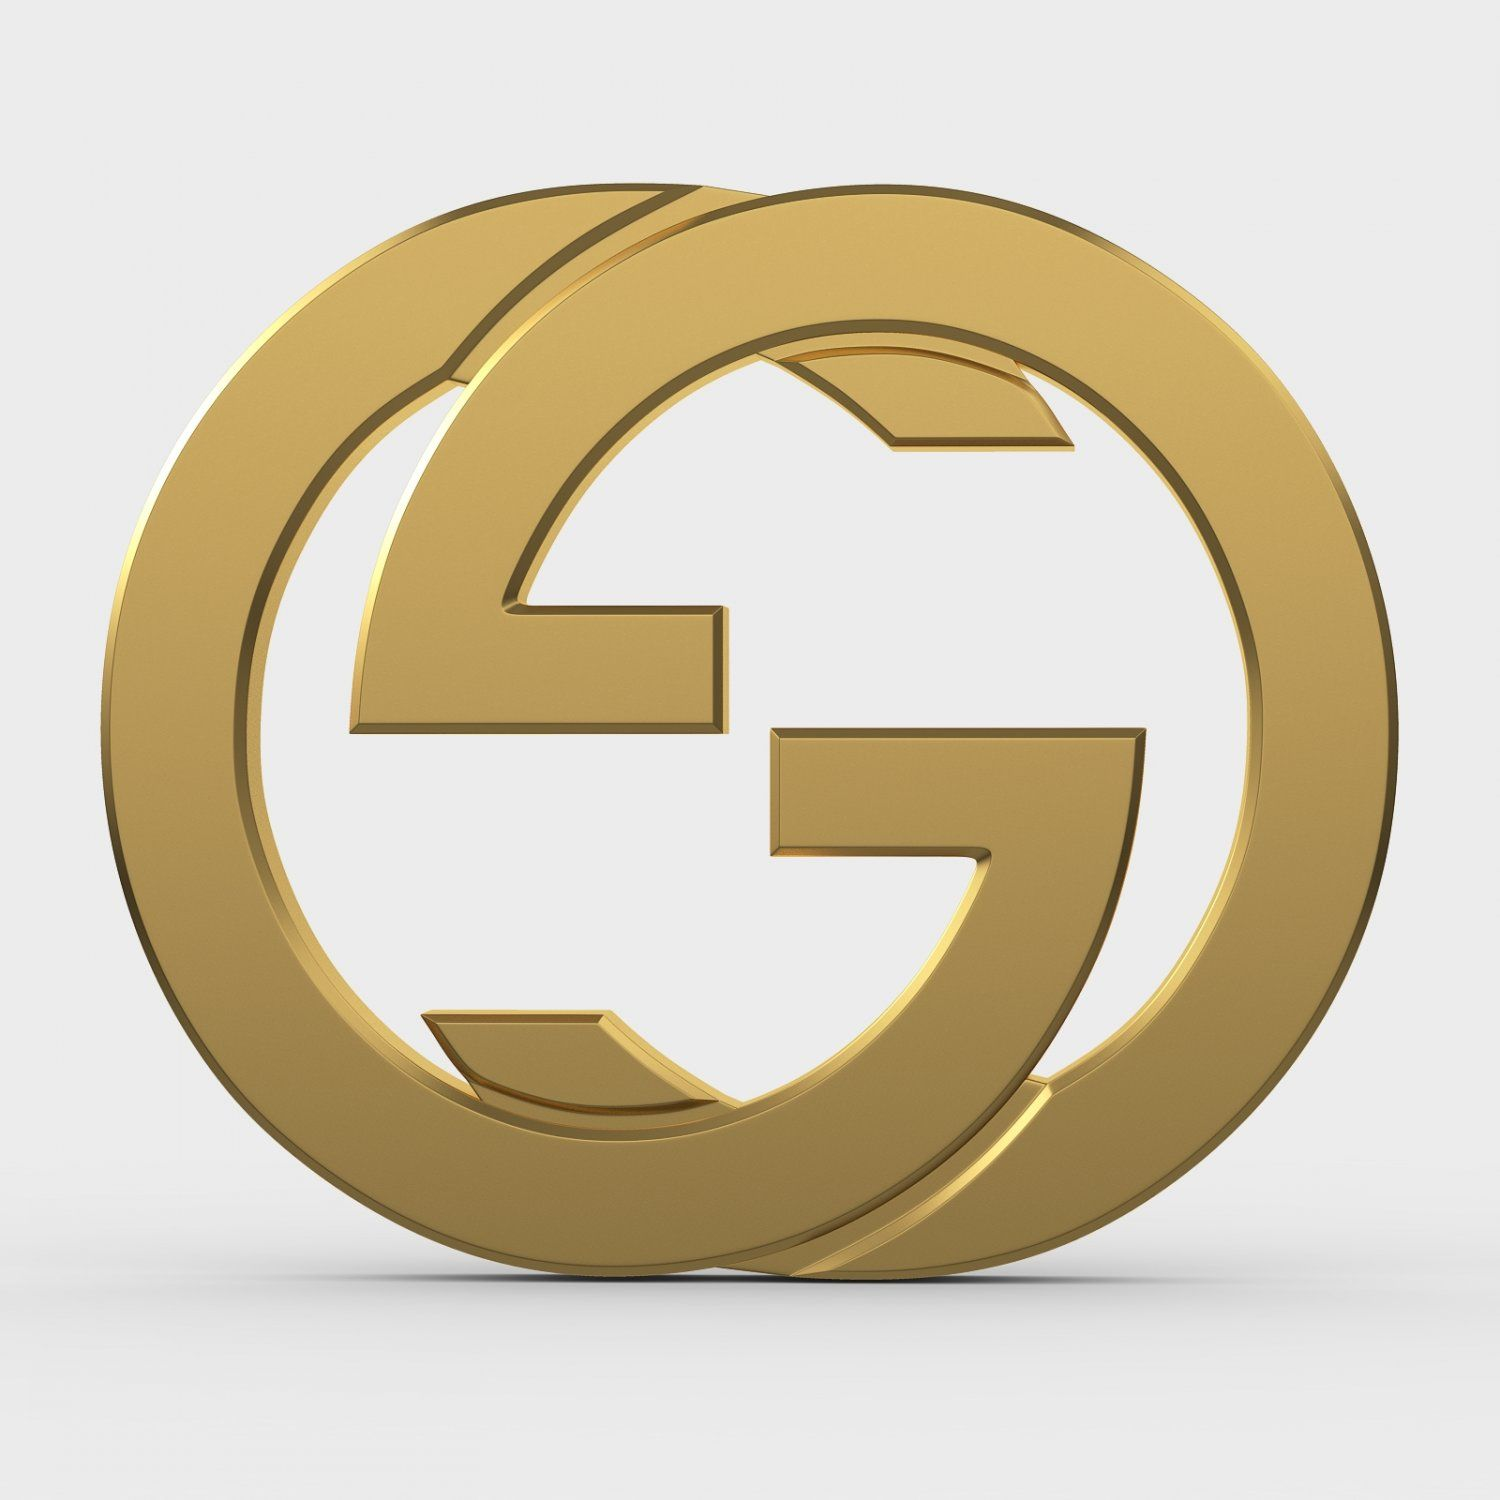 Gucci Logo - Gucci new logo 3D Model in Clothing 3DExport